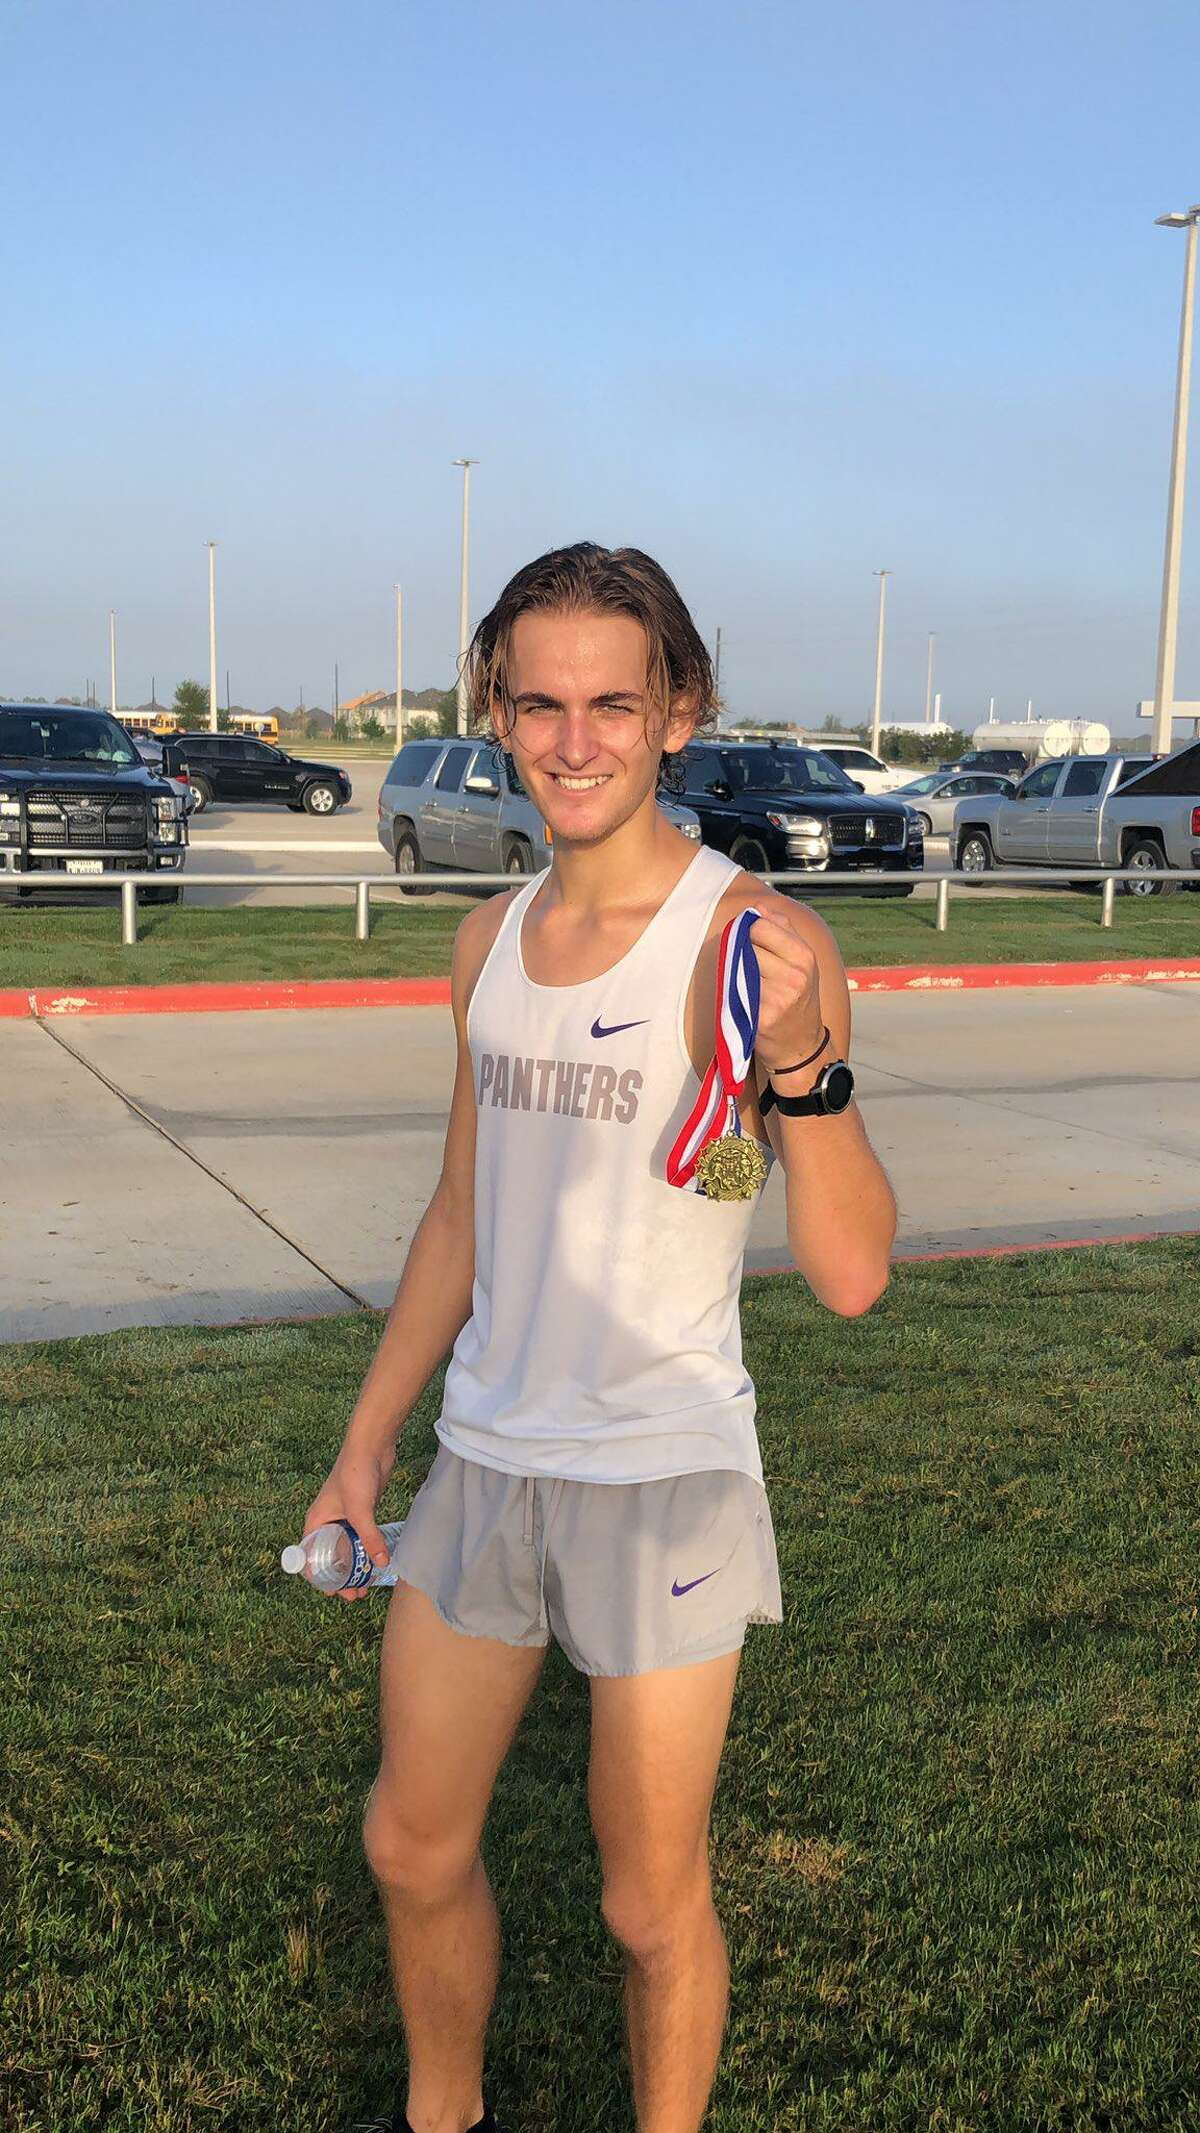 Ridge Point senior Whitaker Bird repeated as District 20-6A cross country champion with a five-kilometer time of 16:03.0.